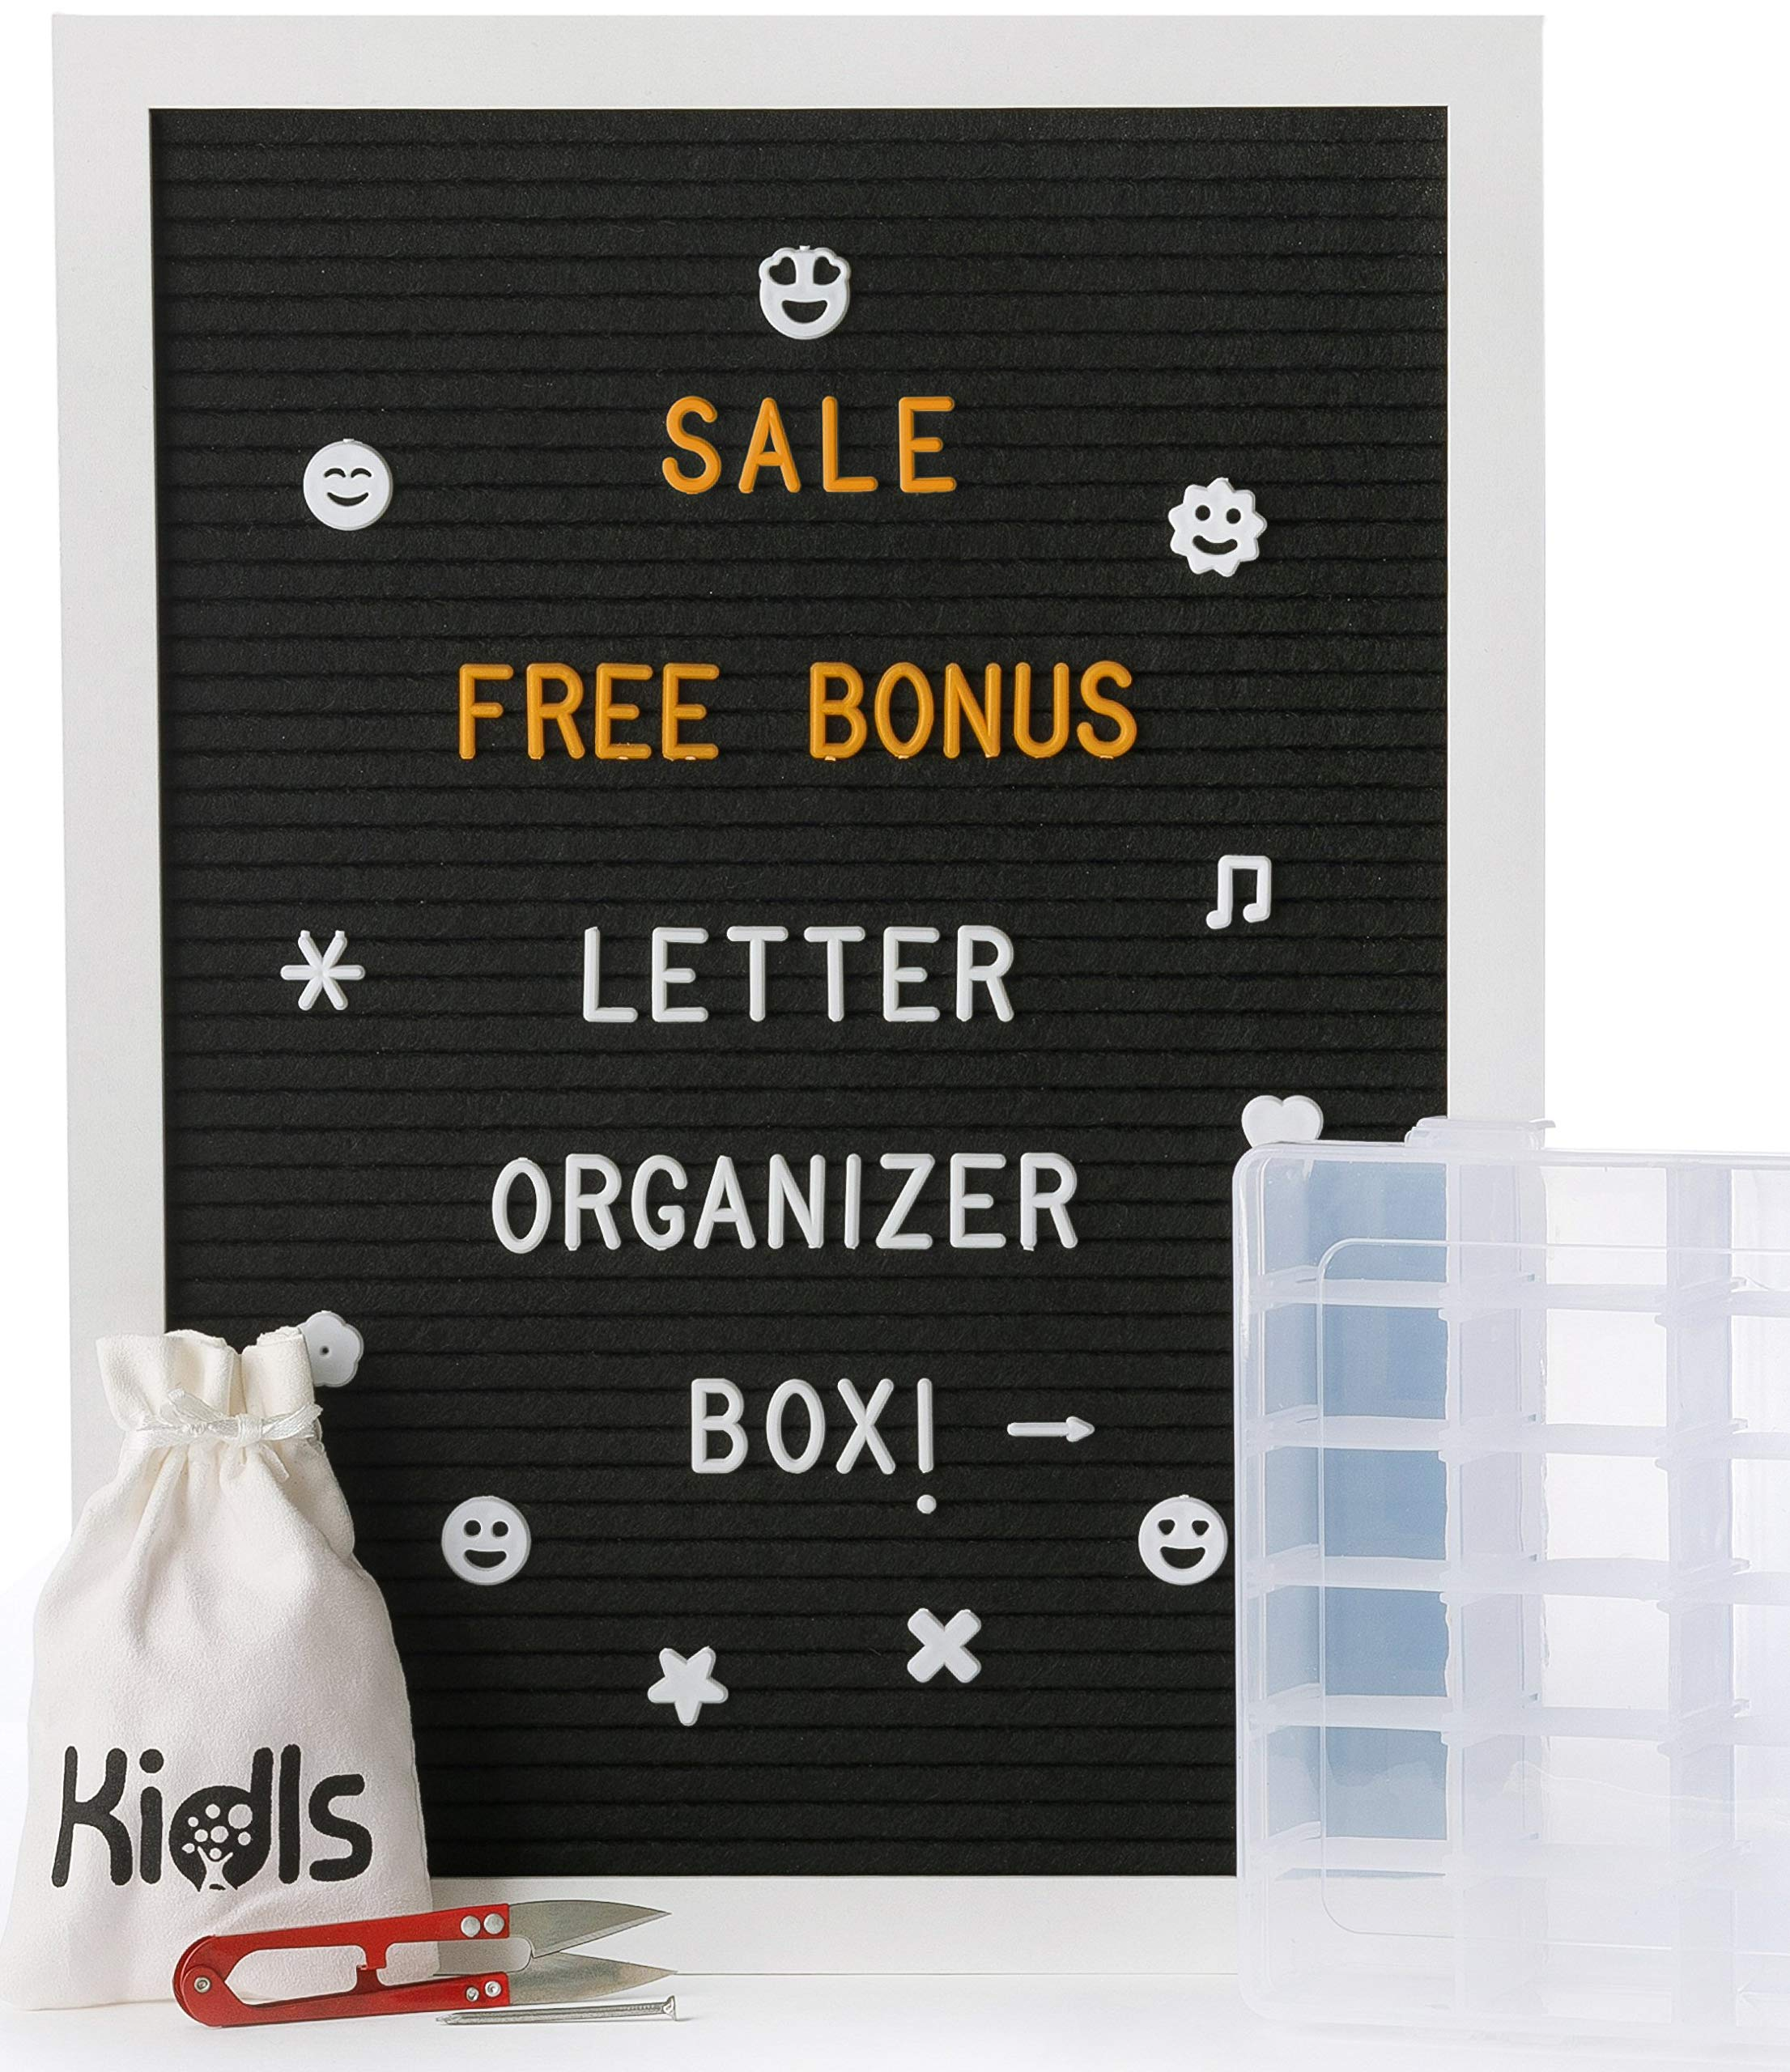 Felt Letter Board – 12''x16'' White Wood Frame with 750 Changeable Letters, Numbers, and Emojis – Message Board Sign + FREE BONUS: Organizer Box and Scissors - Black